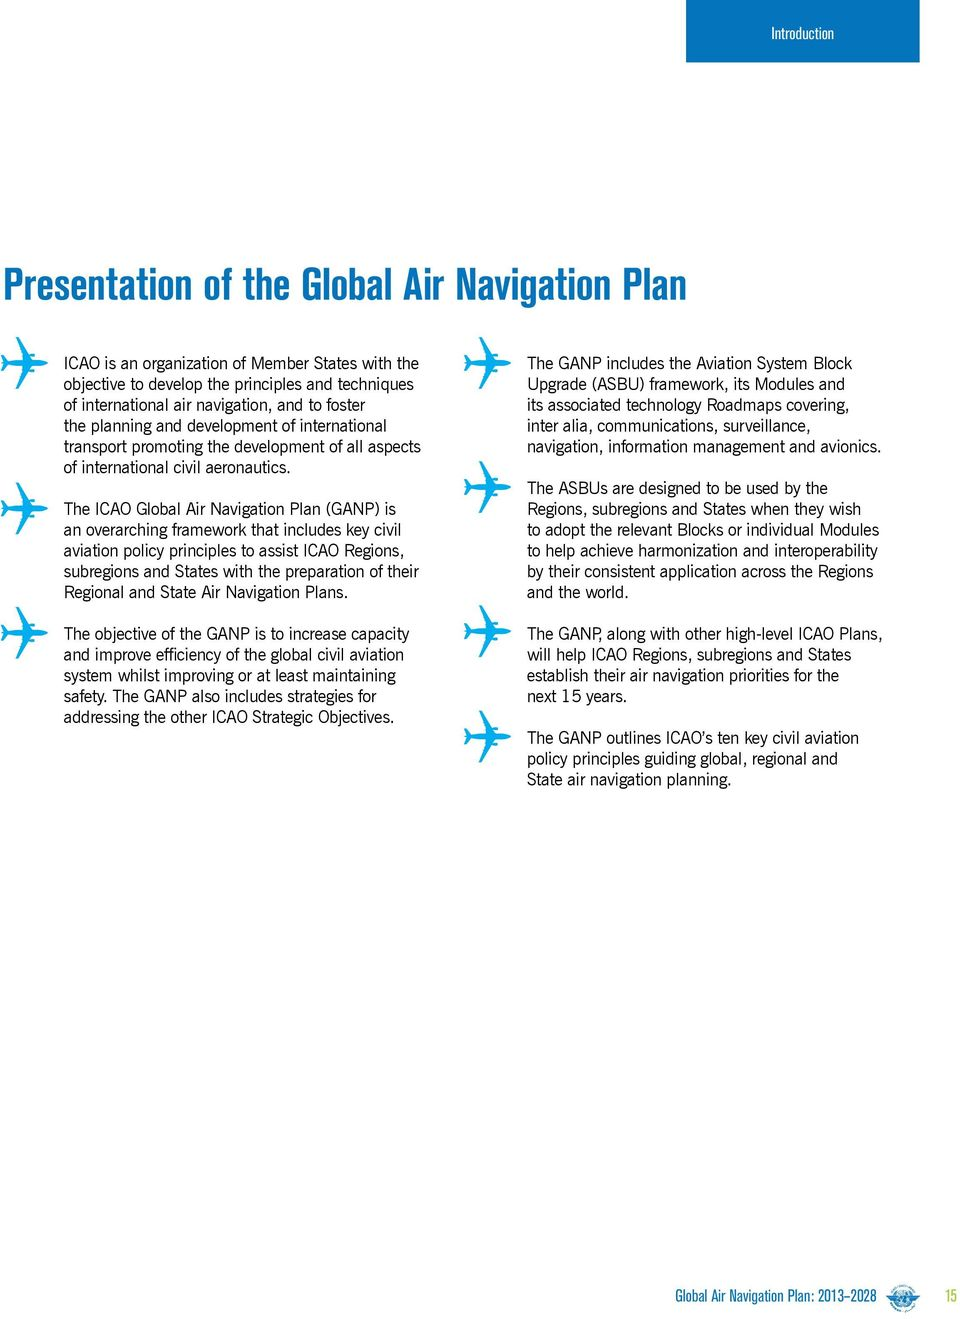 The ICAO Global Air Navigation Plan (GANP) is an overarching framework that includes key civil aviation policy principles to assist ICAO Regions, subregions and States with the preparation of their